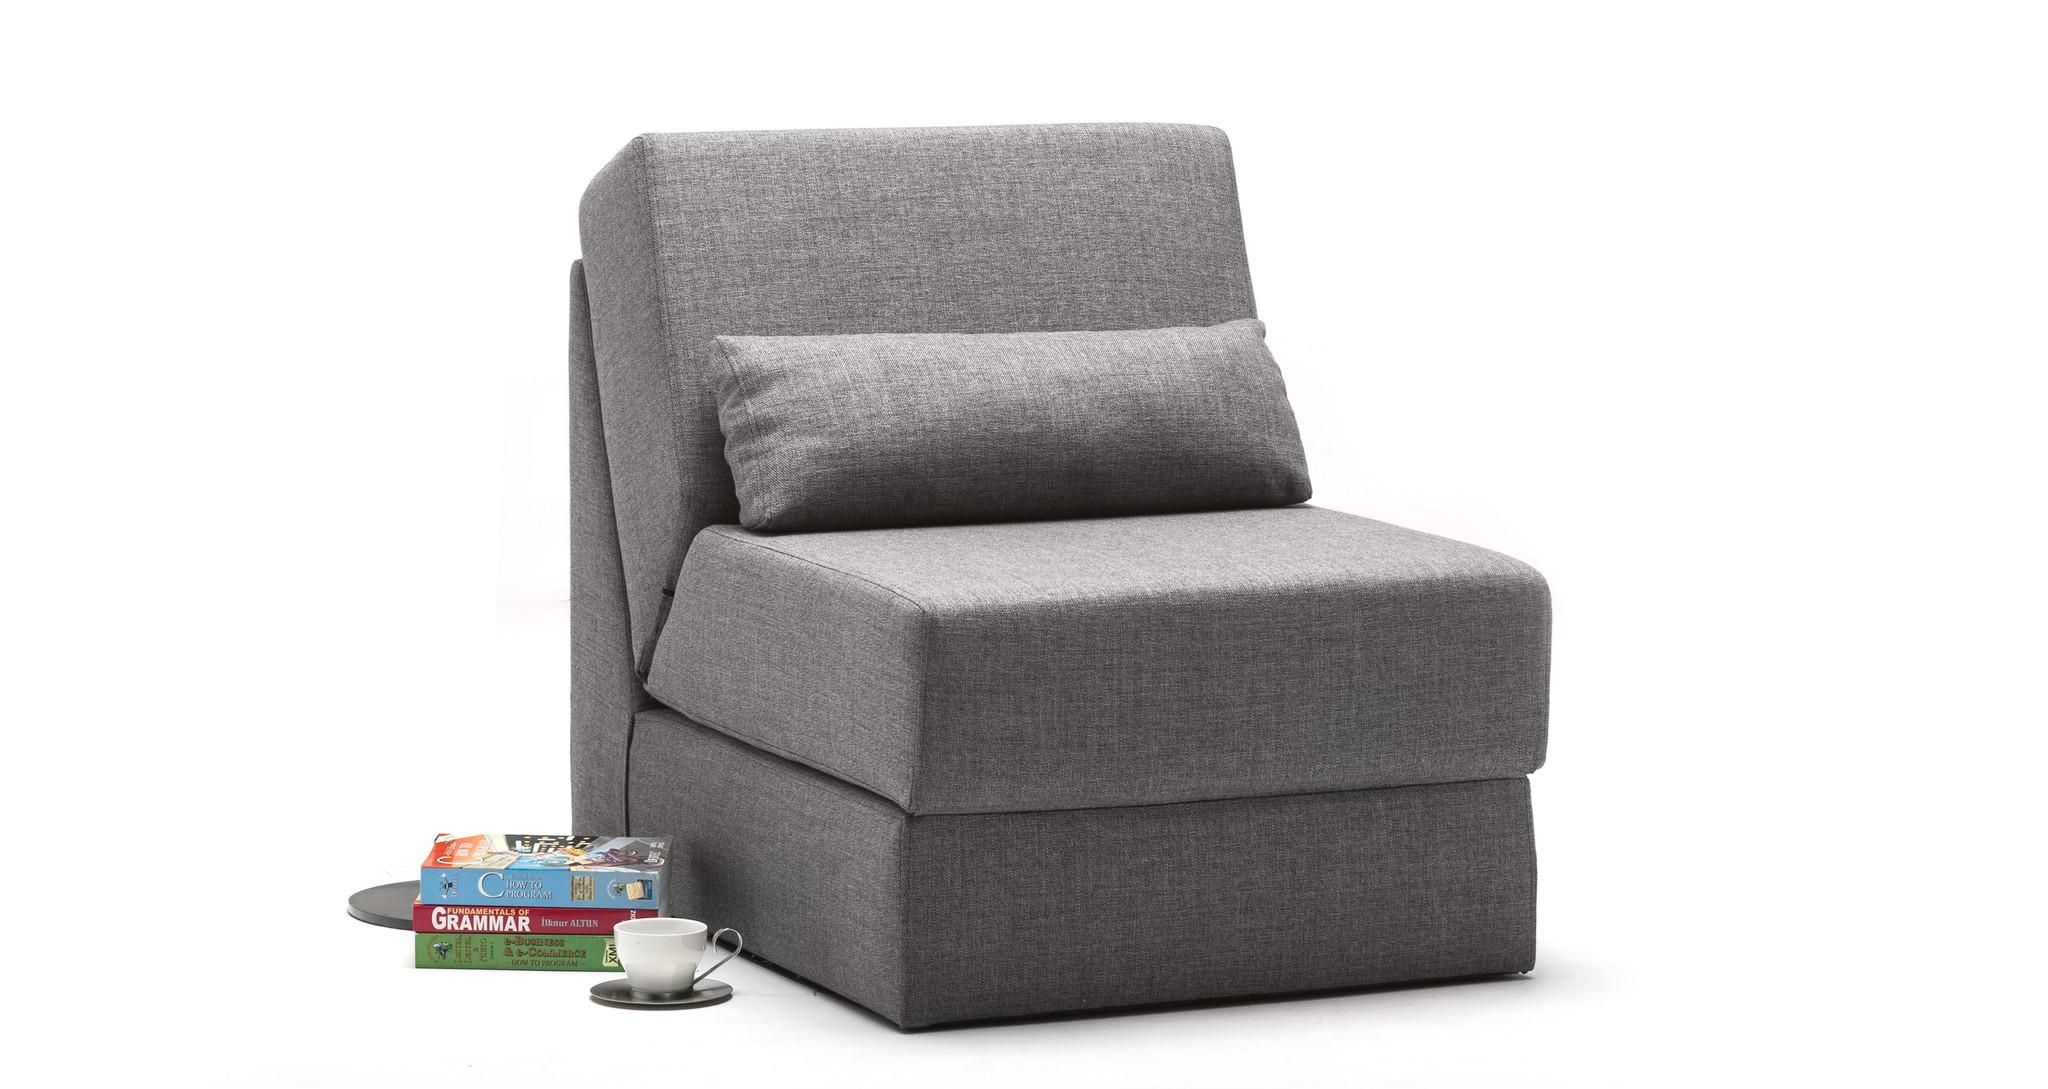 Mini Sofa Mini Sofa Bed Corner Sofa Bed For In Ireland Online Or